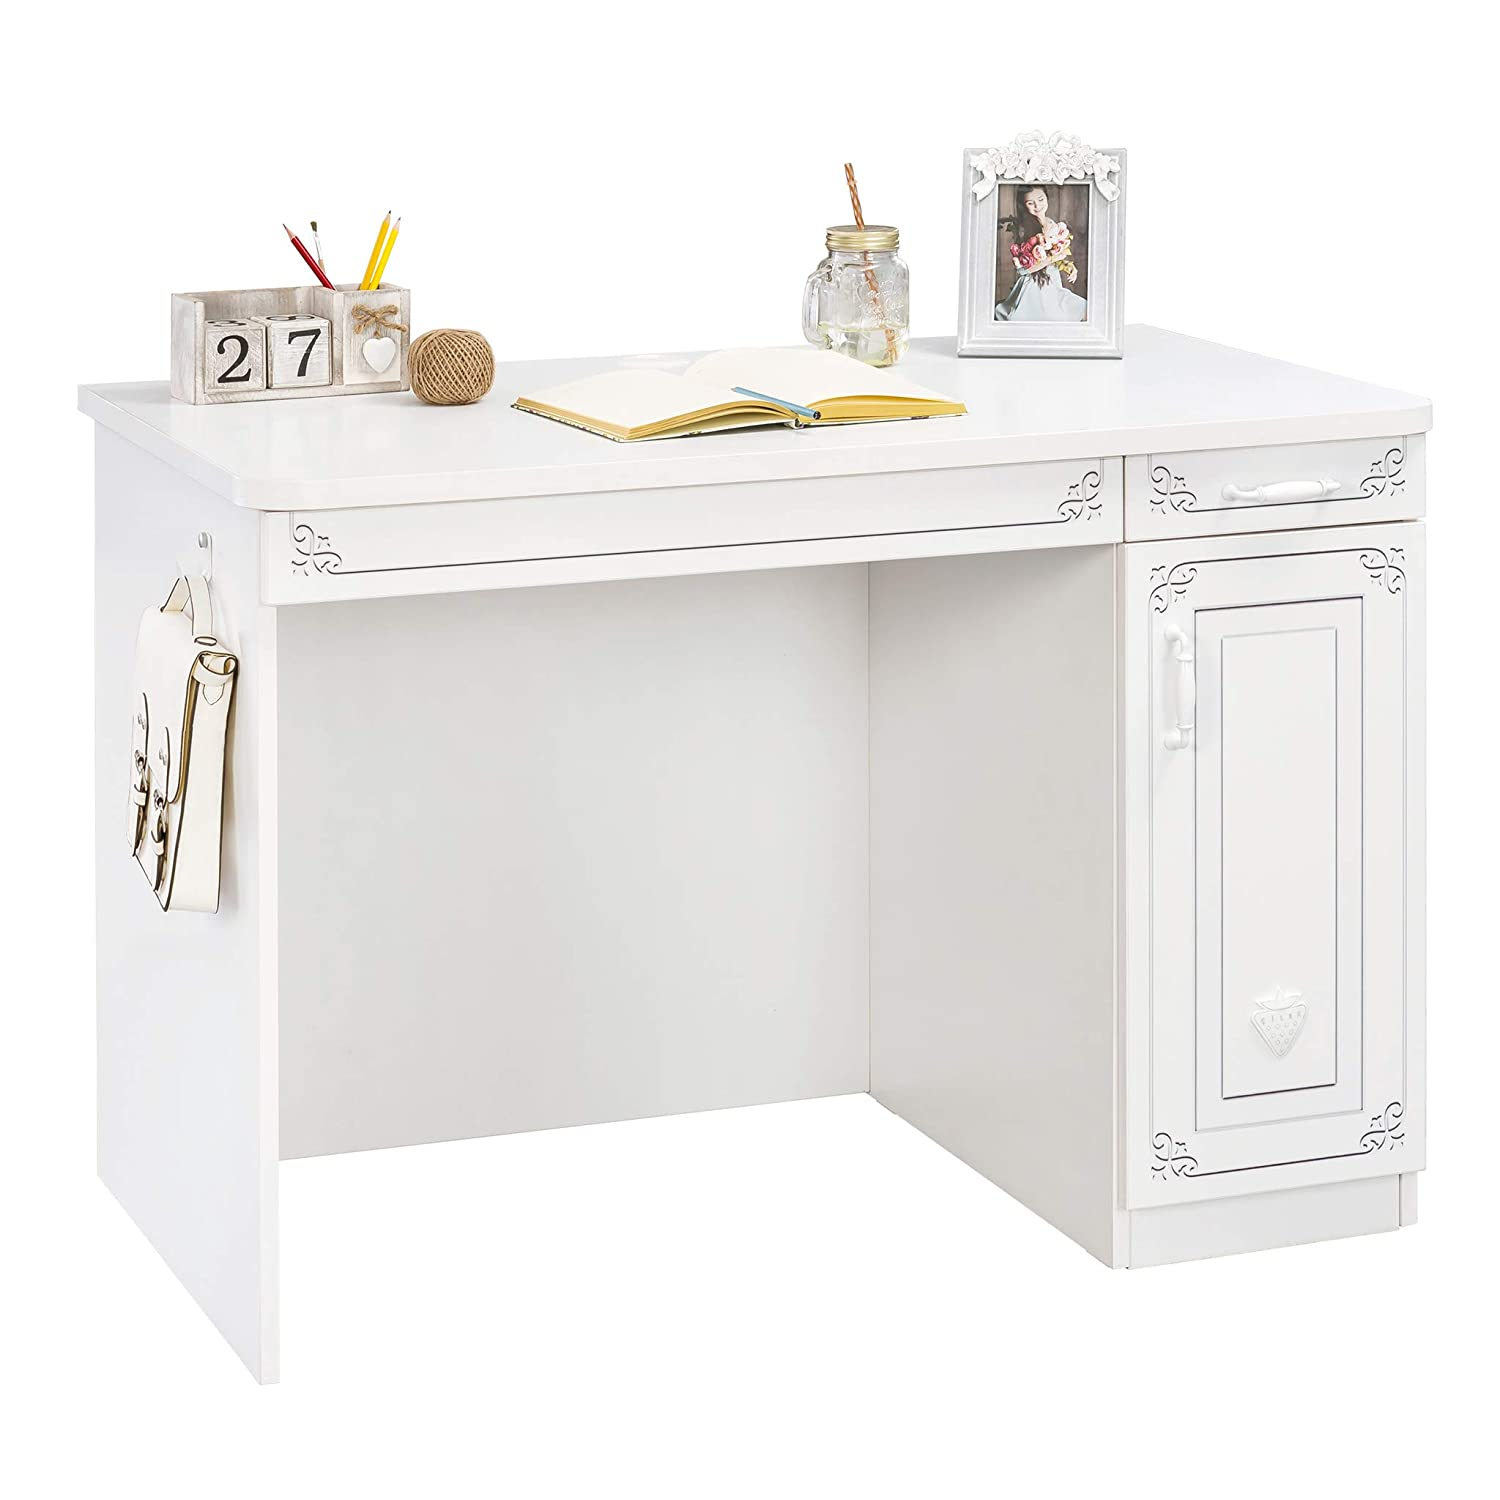 Amazon.com: Cilek Selena Study Desk with Cabinet and Drawers ...